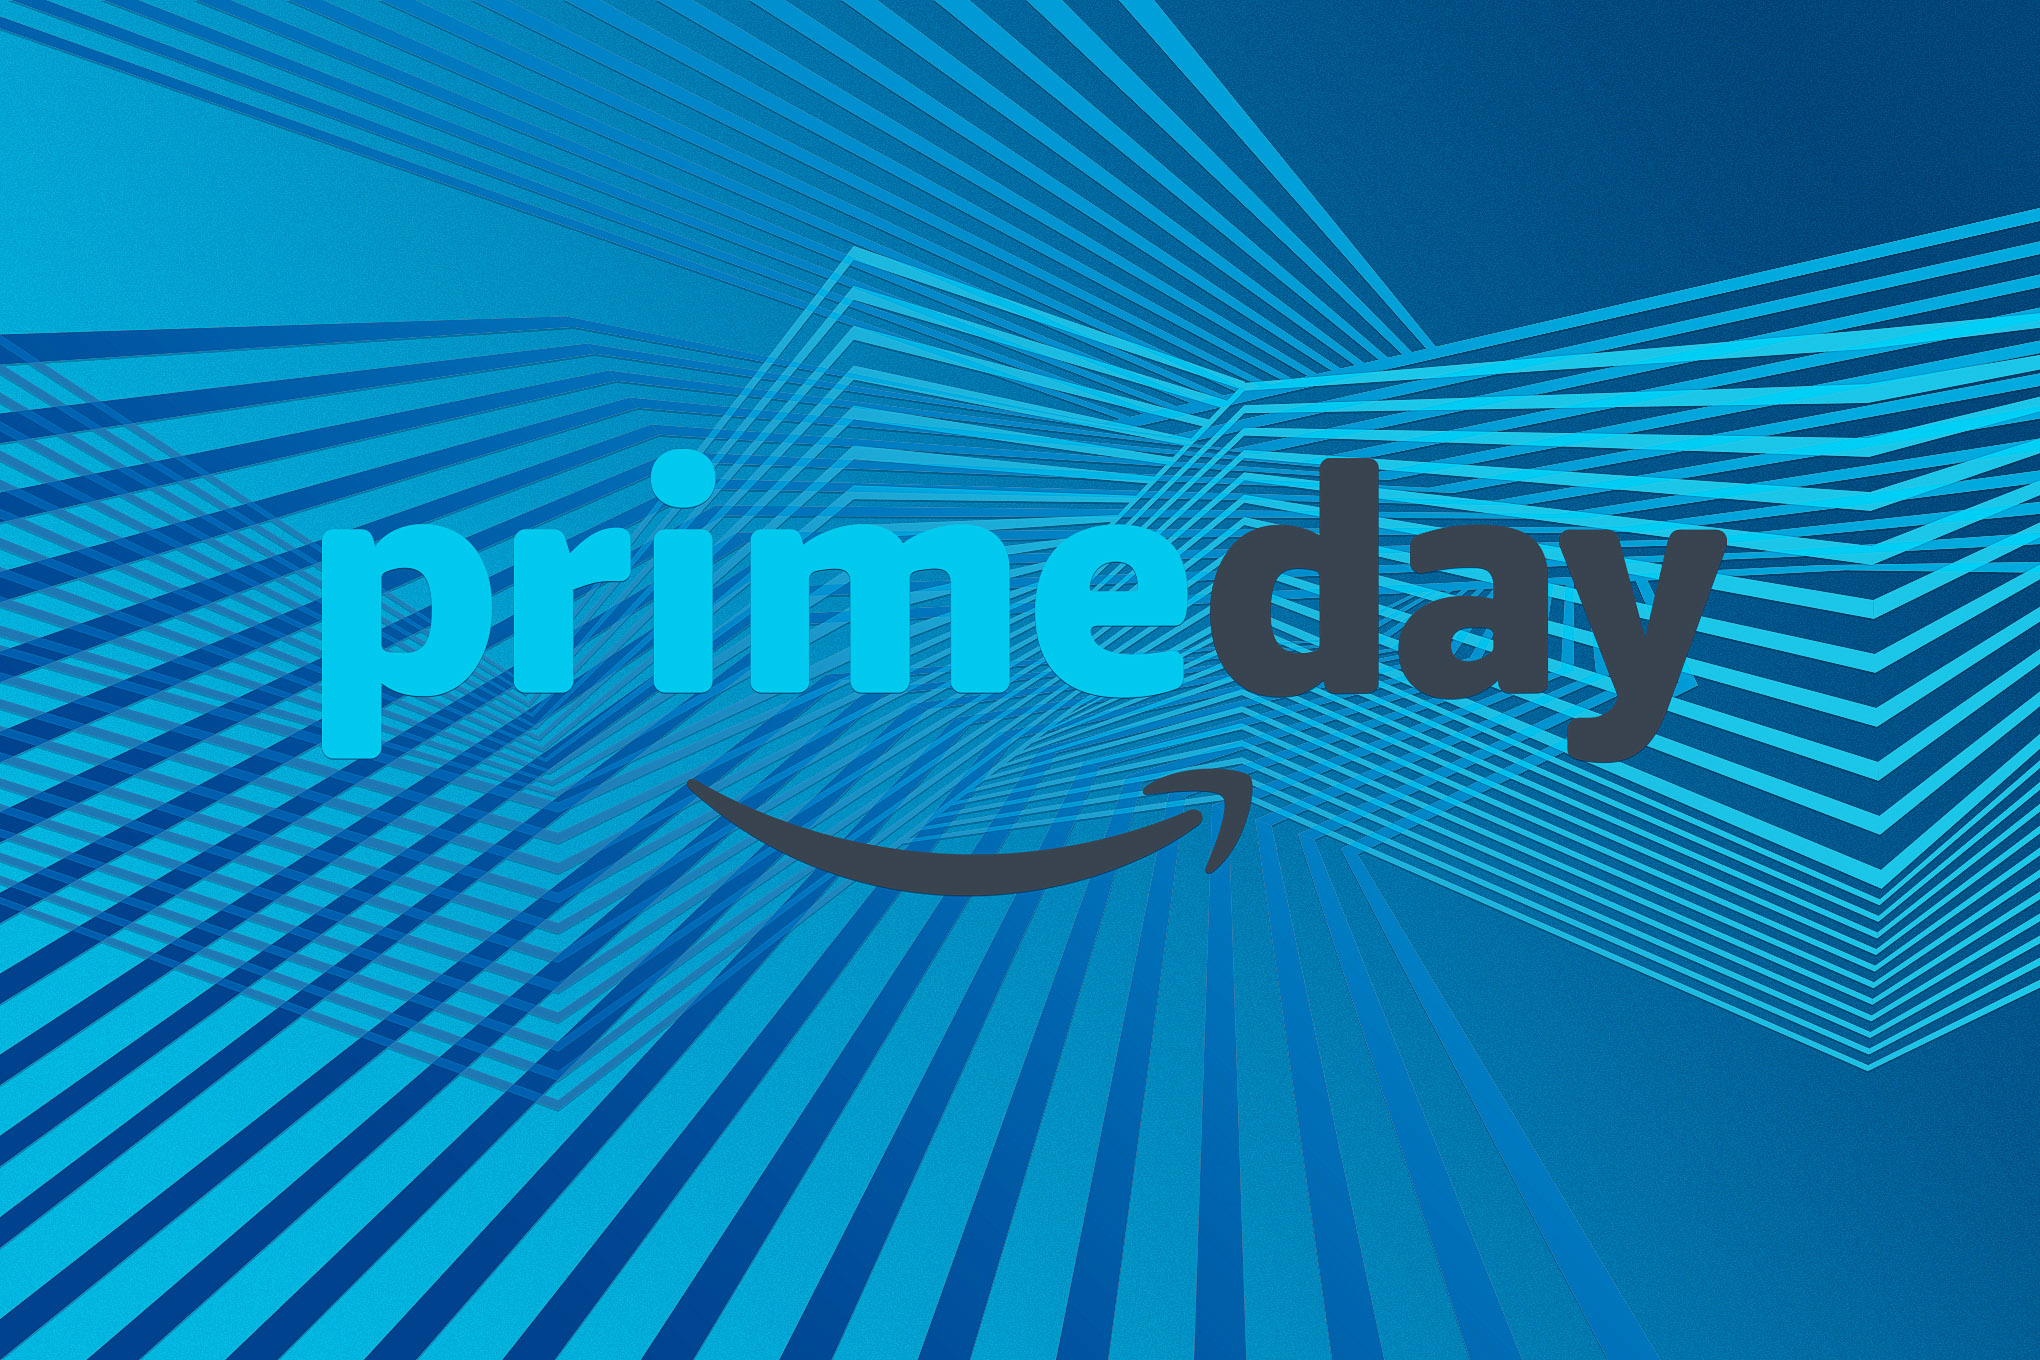 Amazon Prime Day 2019 brings Switch bundles, TV discounts, and more gaming deals